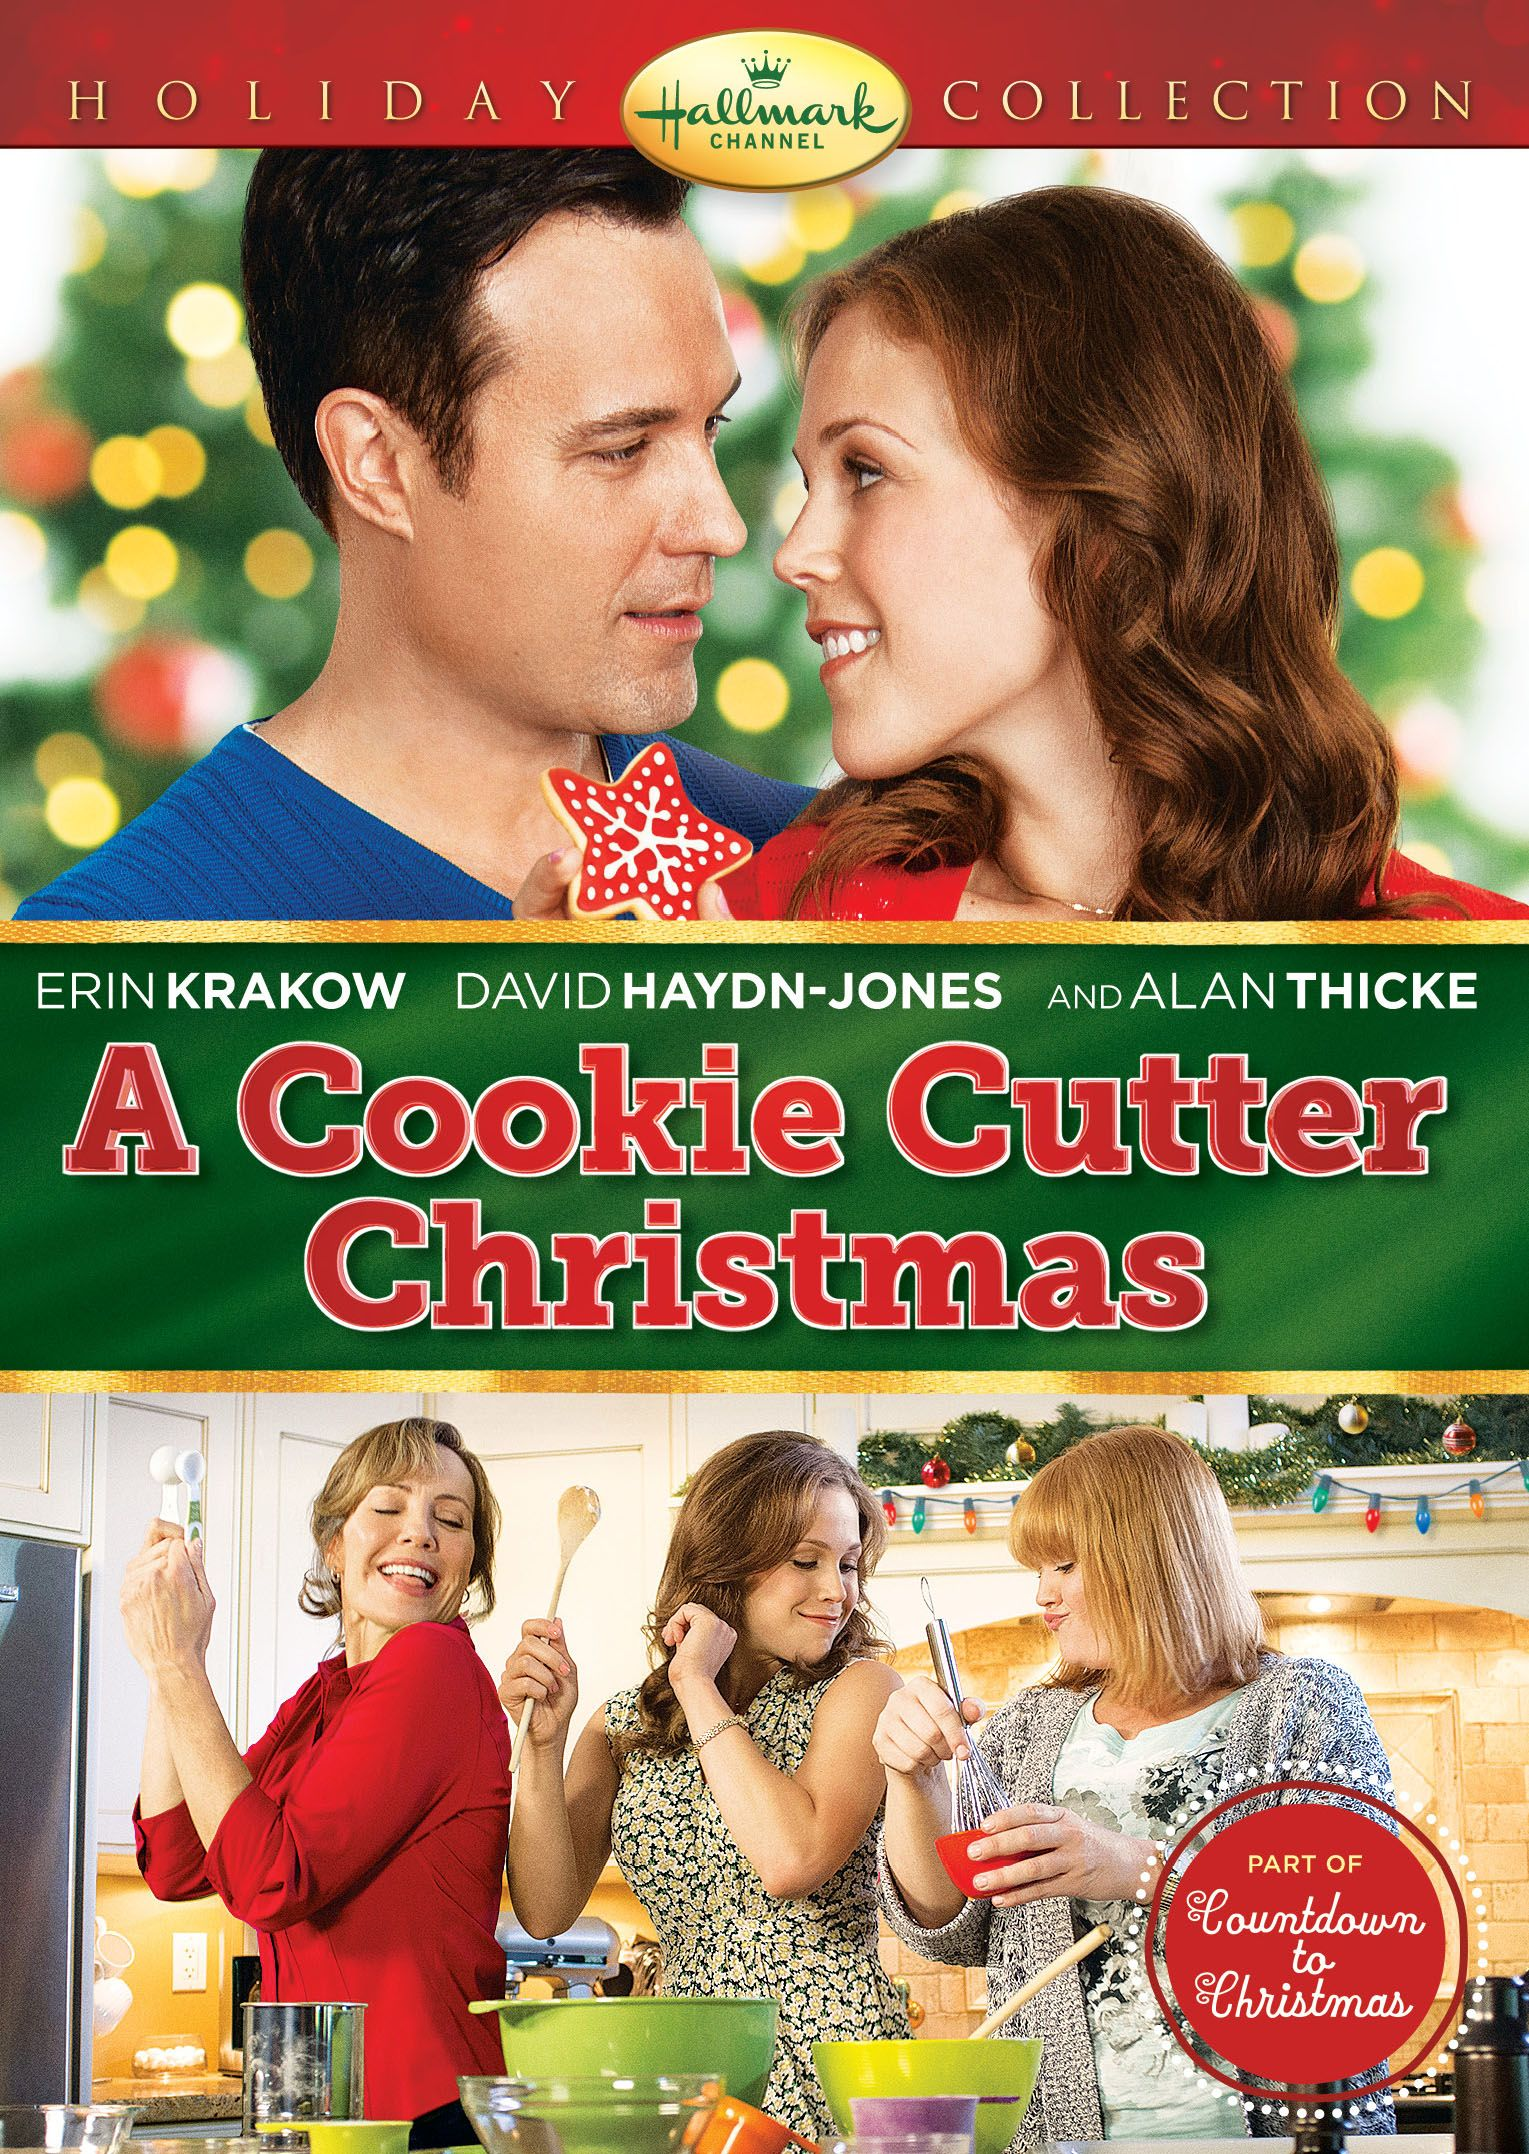 Cinedigm Releases 4 Great Holiday Films From The Hallmark Channel Holiday Collecti Hallmark Channel Christmas Movies Christmas Movies Hallmark Christmas Movies